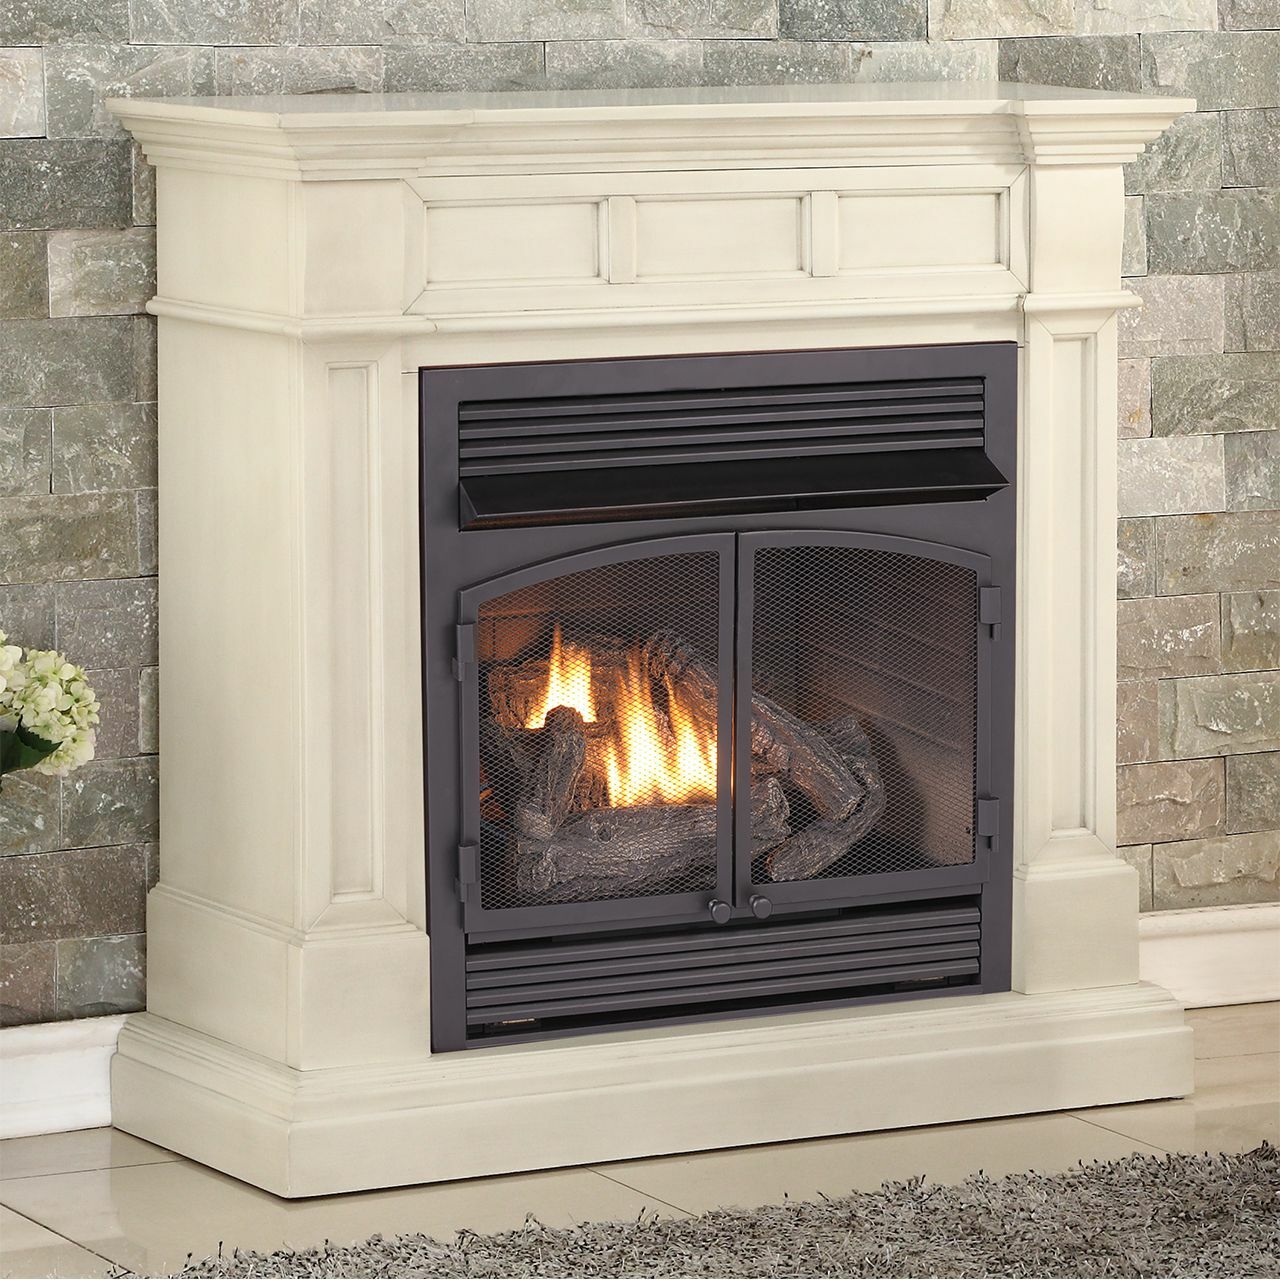 Duluth forge dual fuel vent free fireplace at 32000 btu with remote control antique white